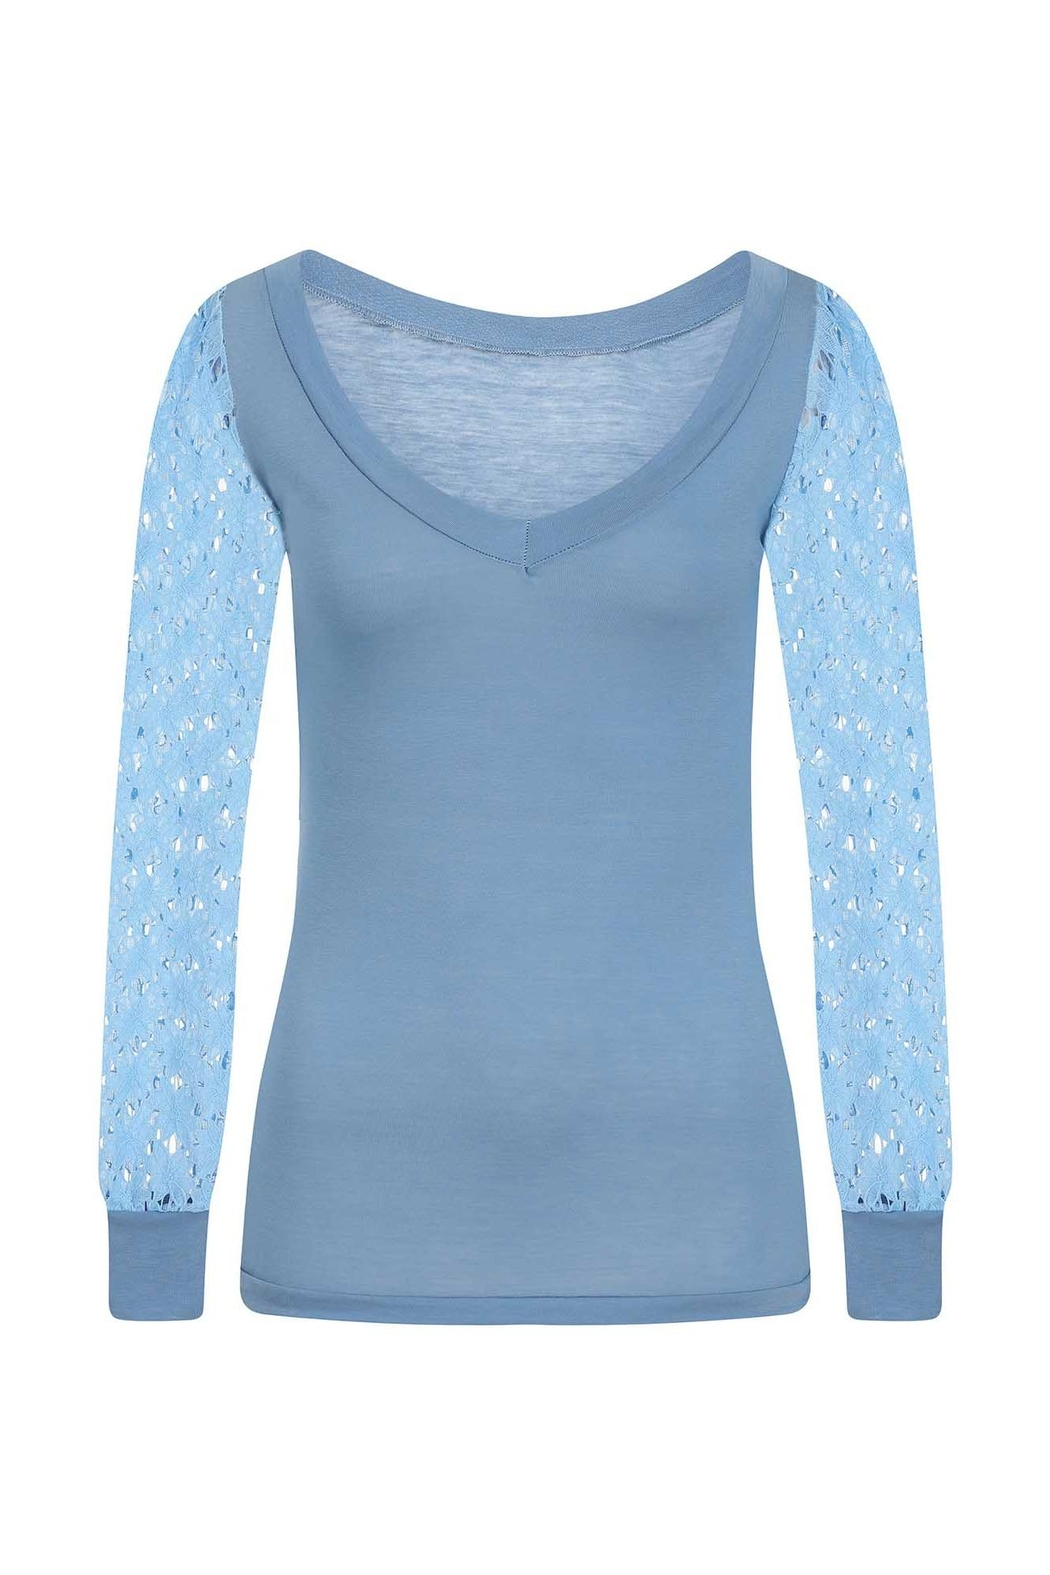 Sophie Cameron Davies Blue Lace Sleeve Top - Side Cropped Image